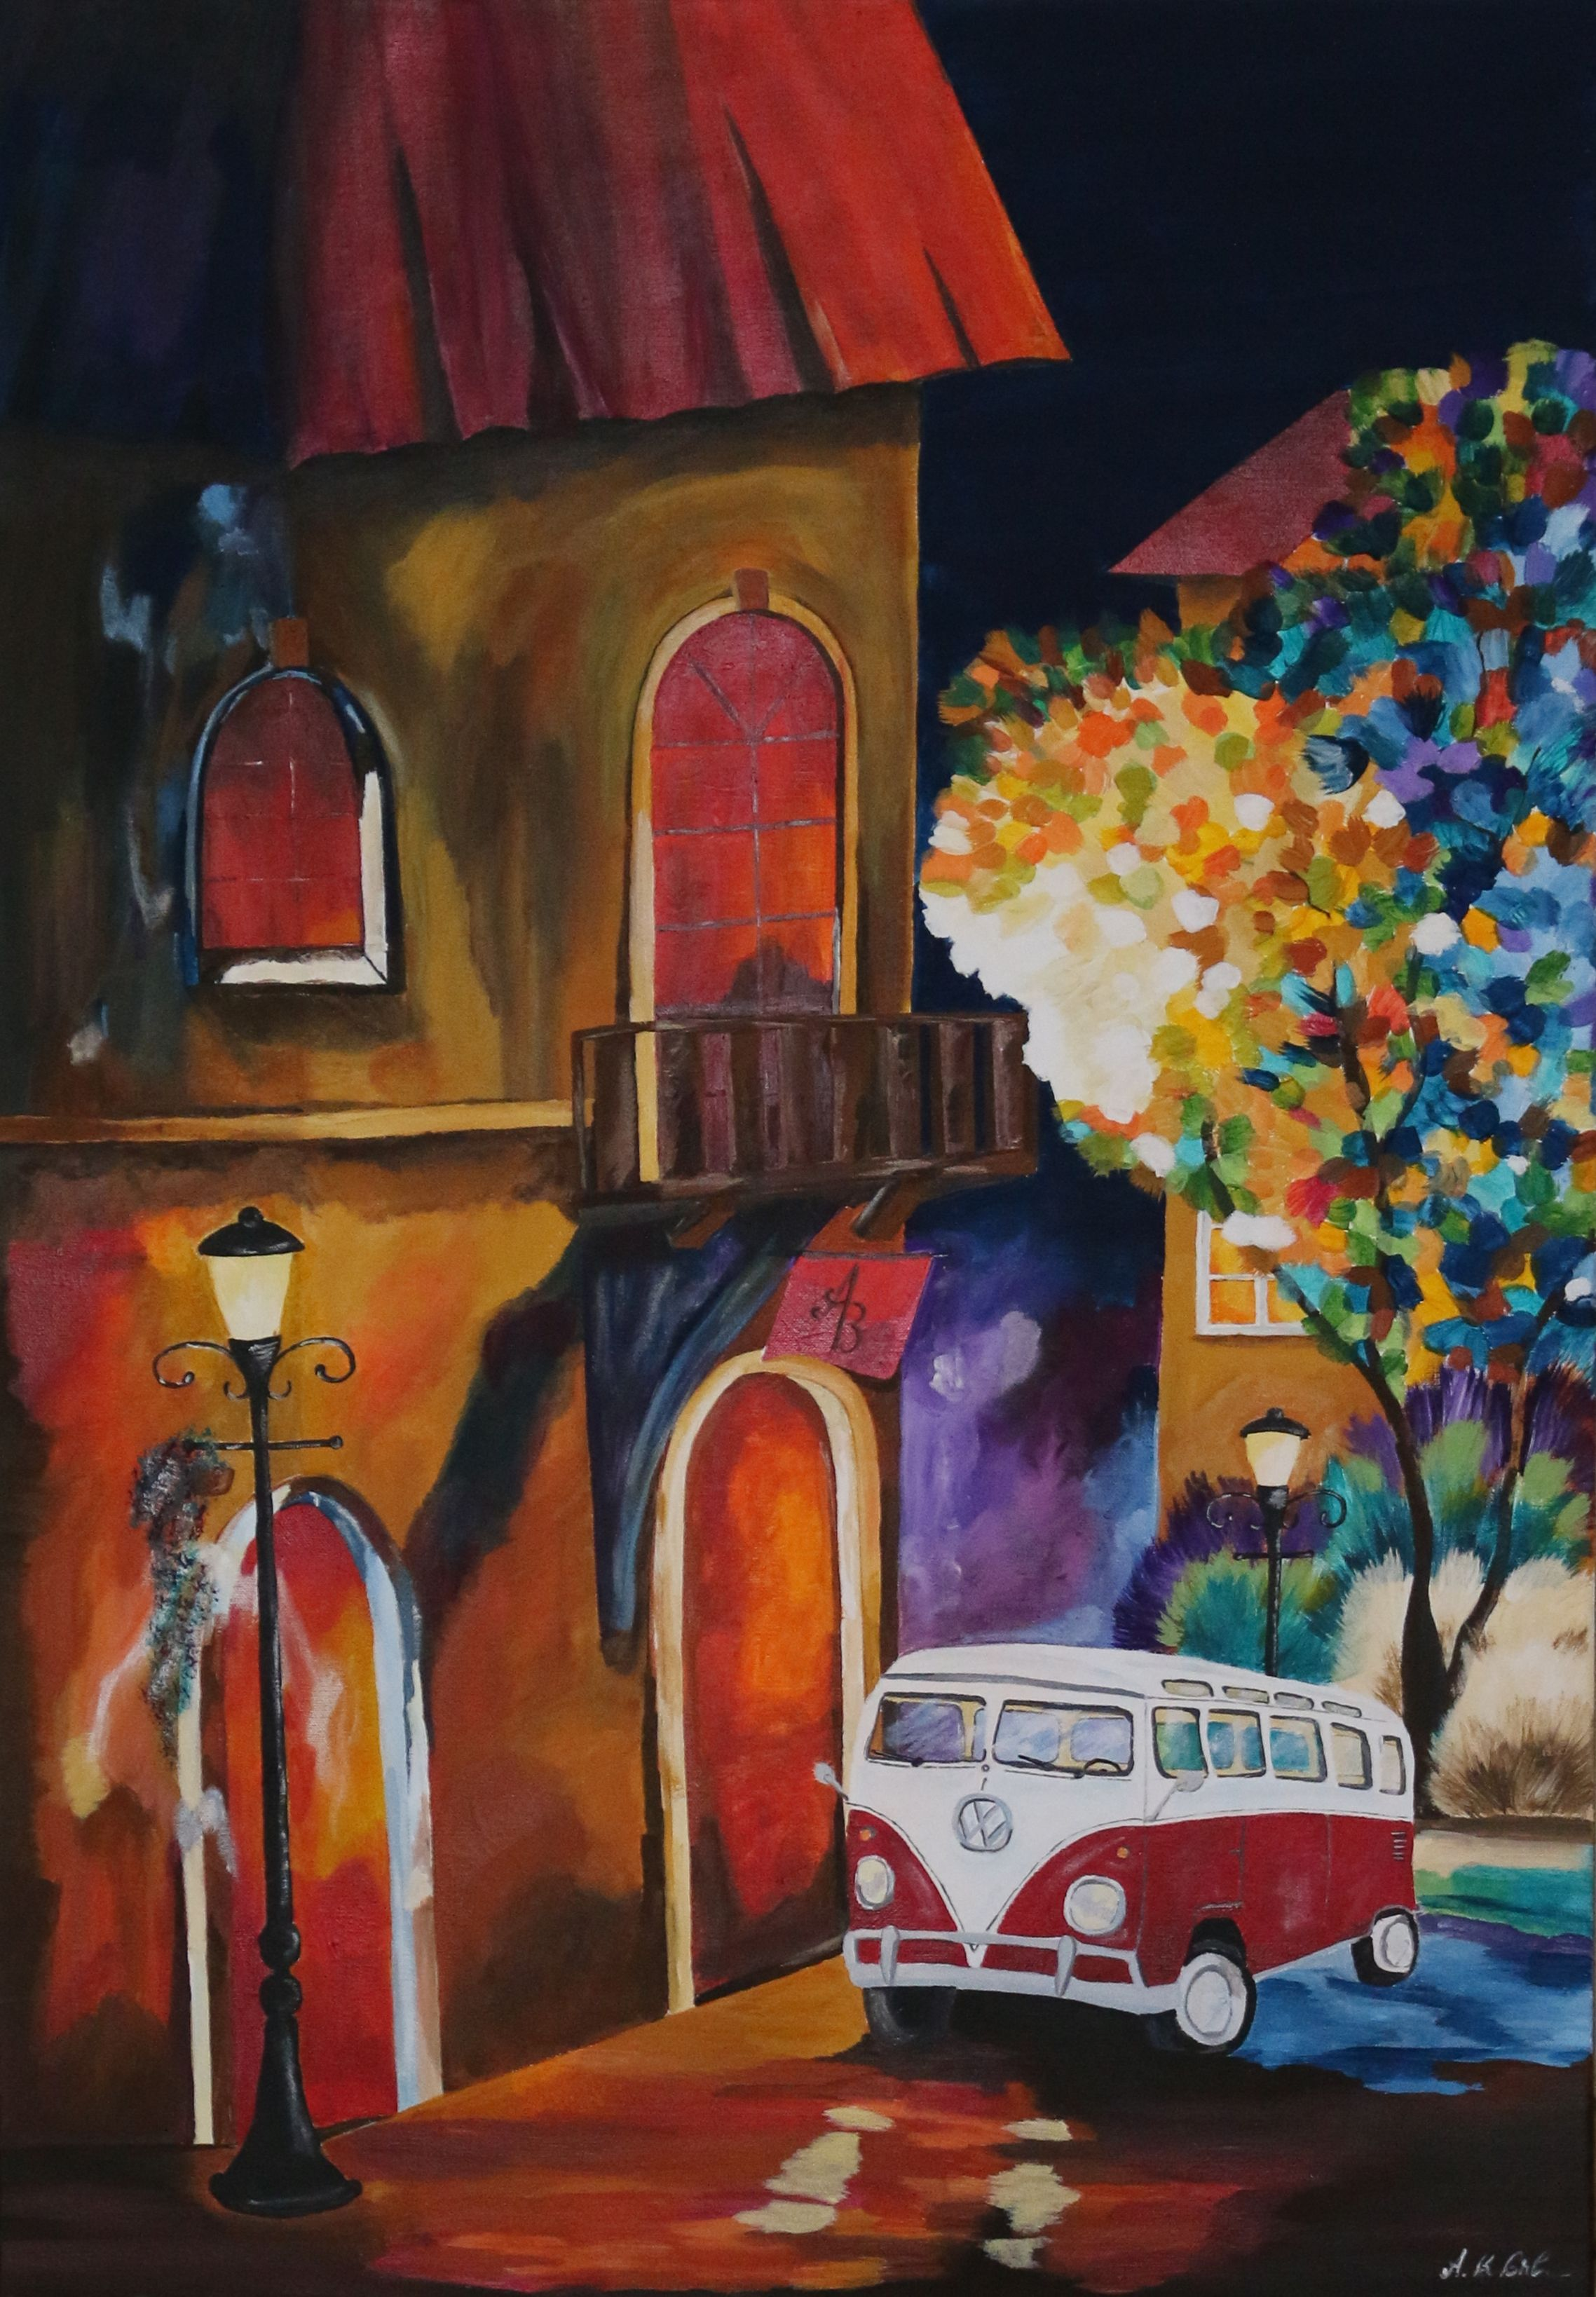 The crooked house 70x100 cm malerei, paintings, VW, Bulli, T1, car ...